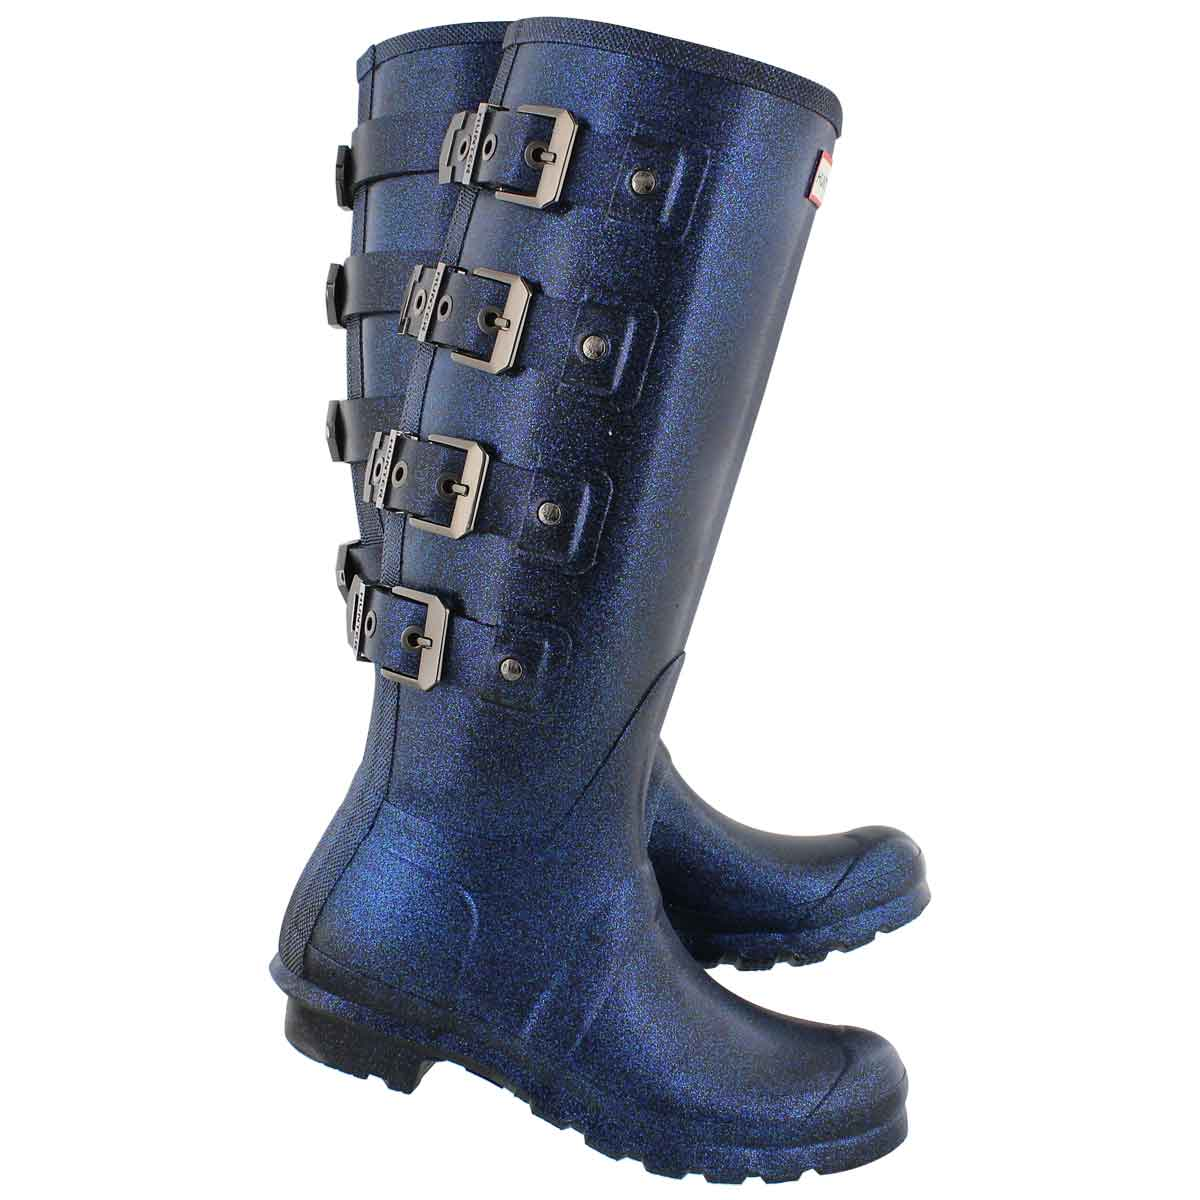 Lds Original Tall MS neptune rain boot